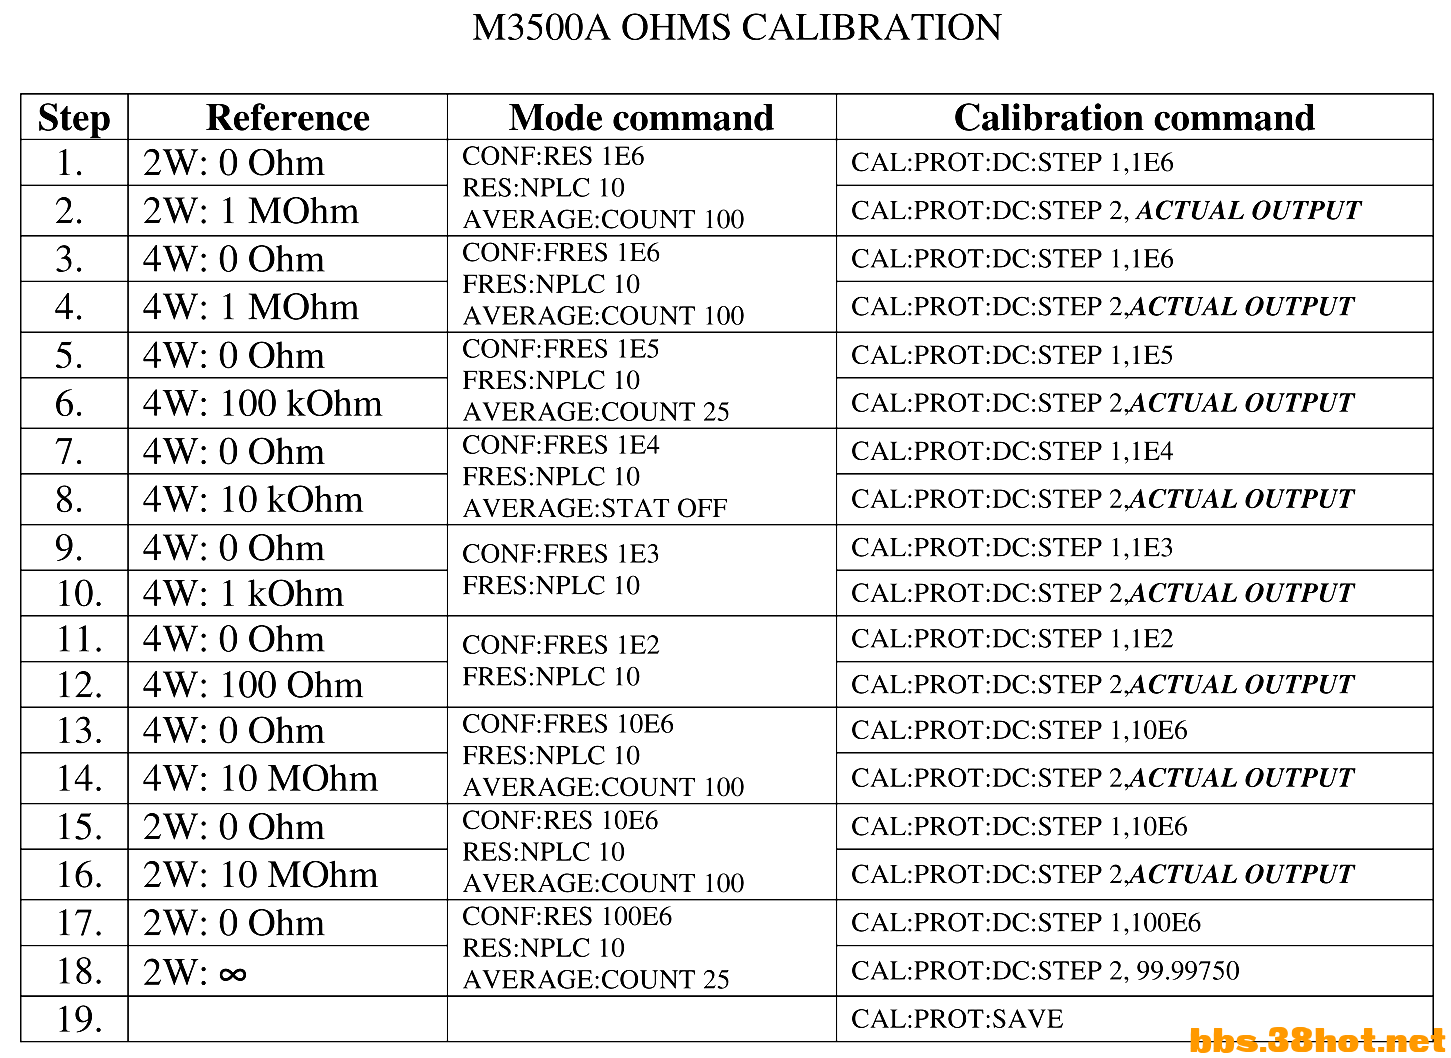 Ohms Calibration.png